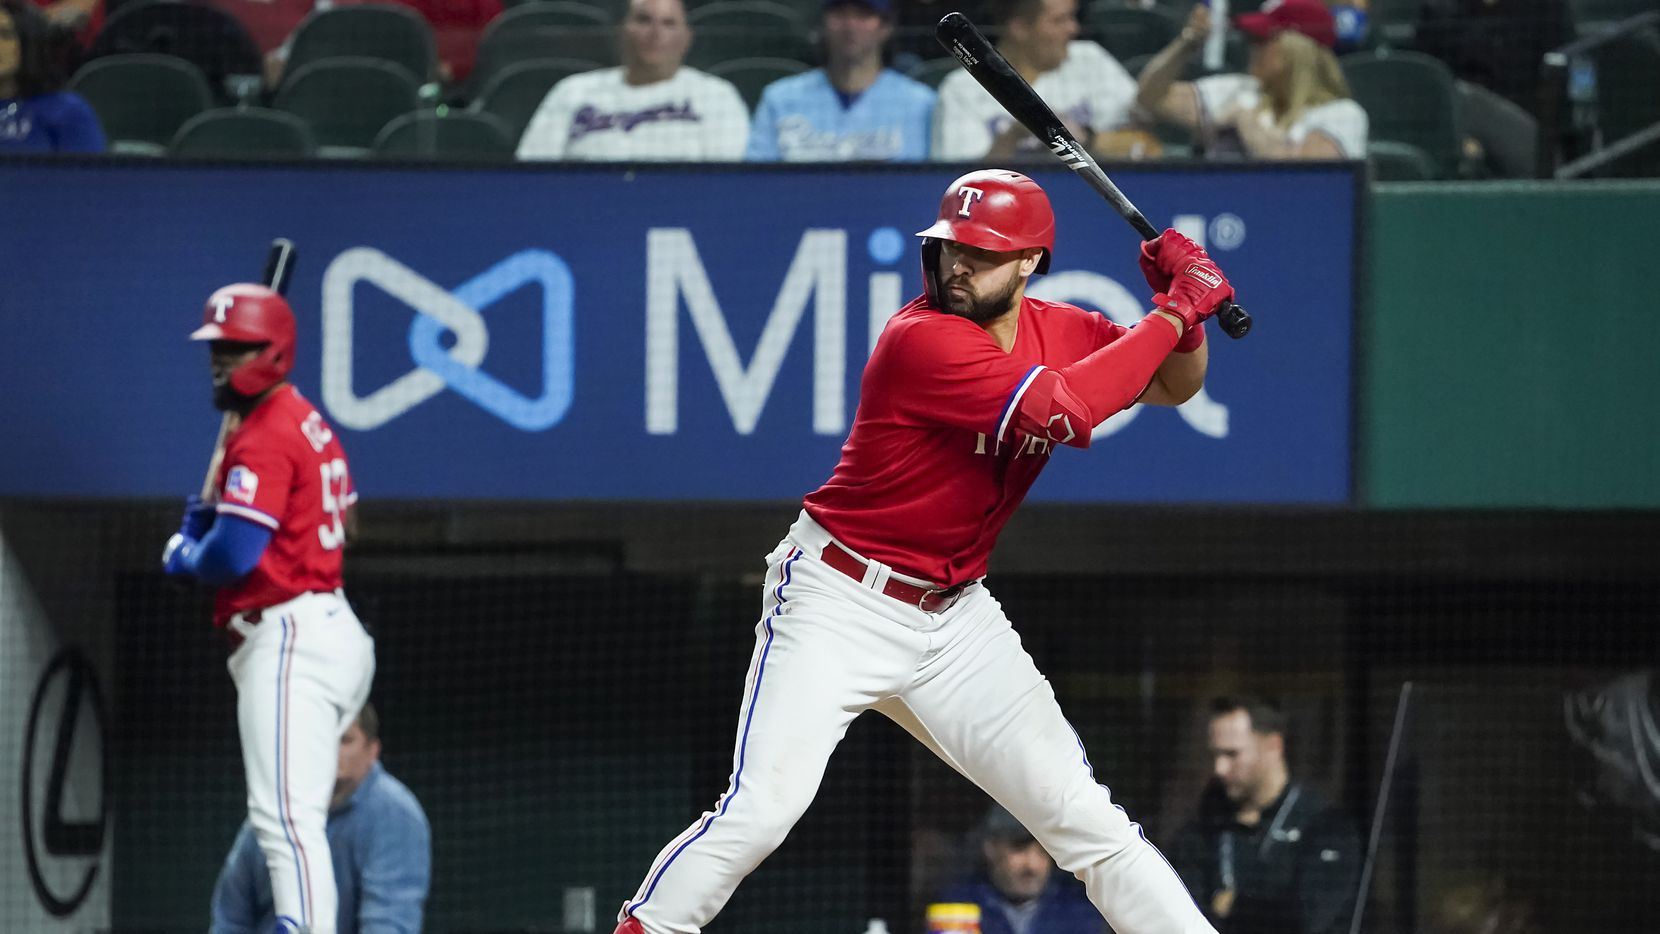 Texas Rangers right fielder Joey Gallo bats during the sixth inning with left fielder Adolis Garcia on deck against the Baltimore Orioles at Globe Life Field on Friday, April 16, 2021.